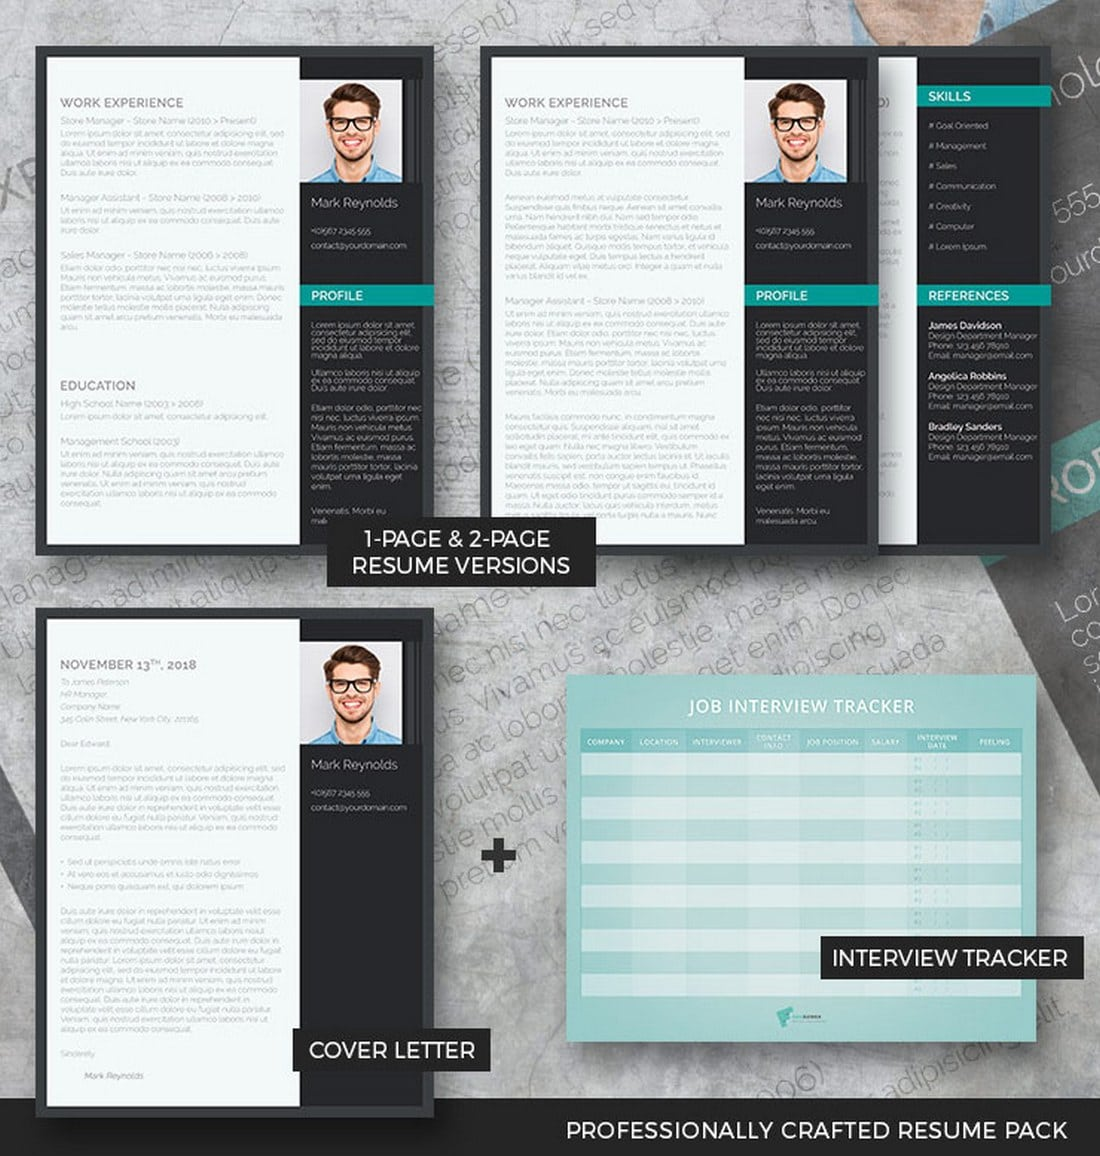 the-modern-professional-resume-pack Freesumes: Free Resumes, Beautifully Designed design tips